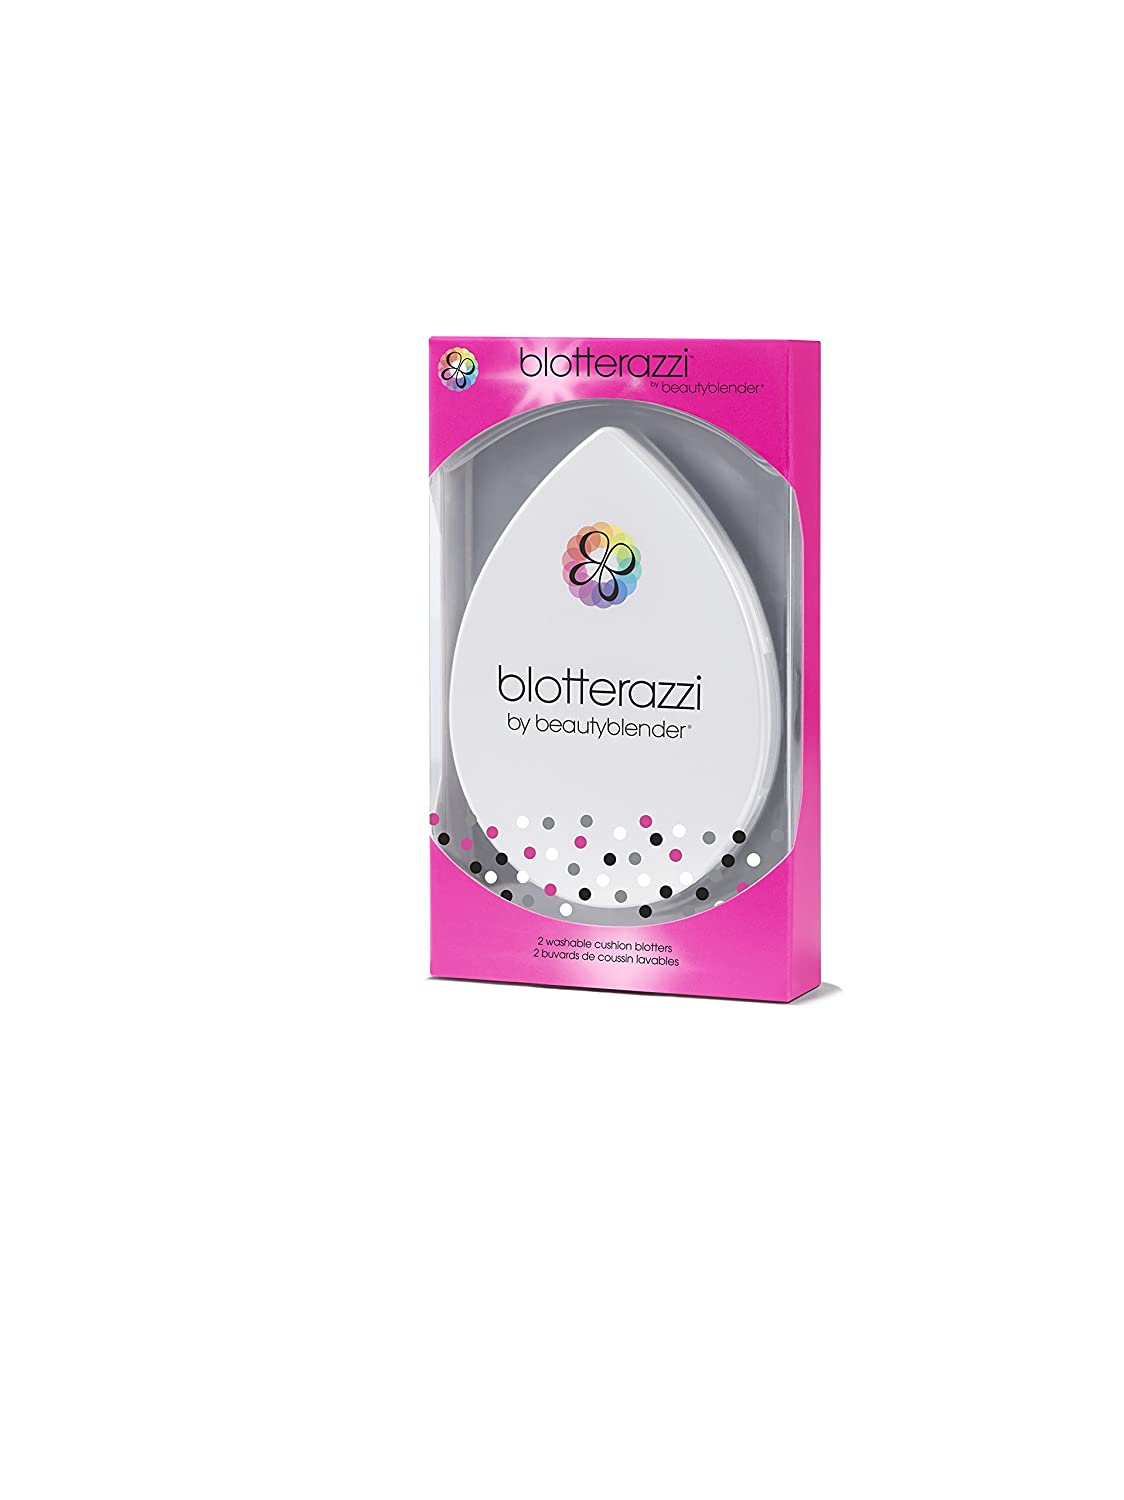 beautyblender blotterazzi: Reusable Blotting Pads with Mirrored Compact